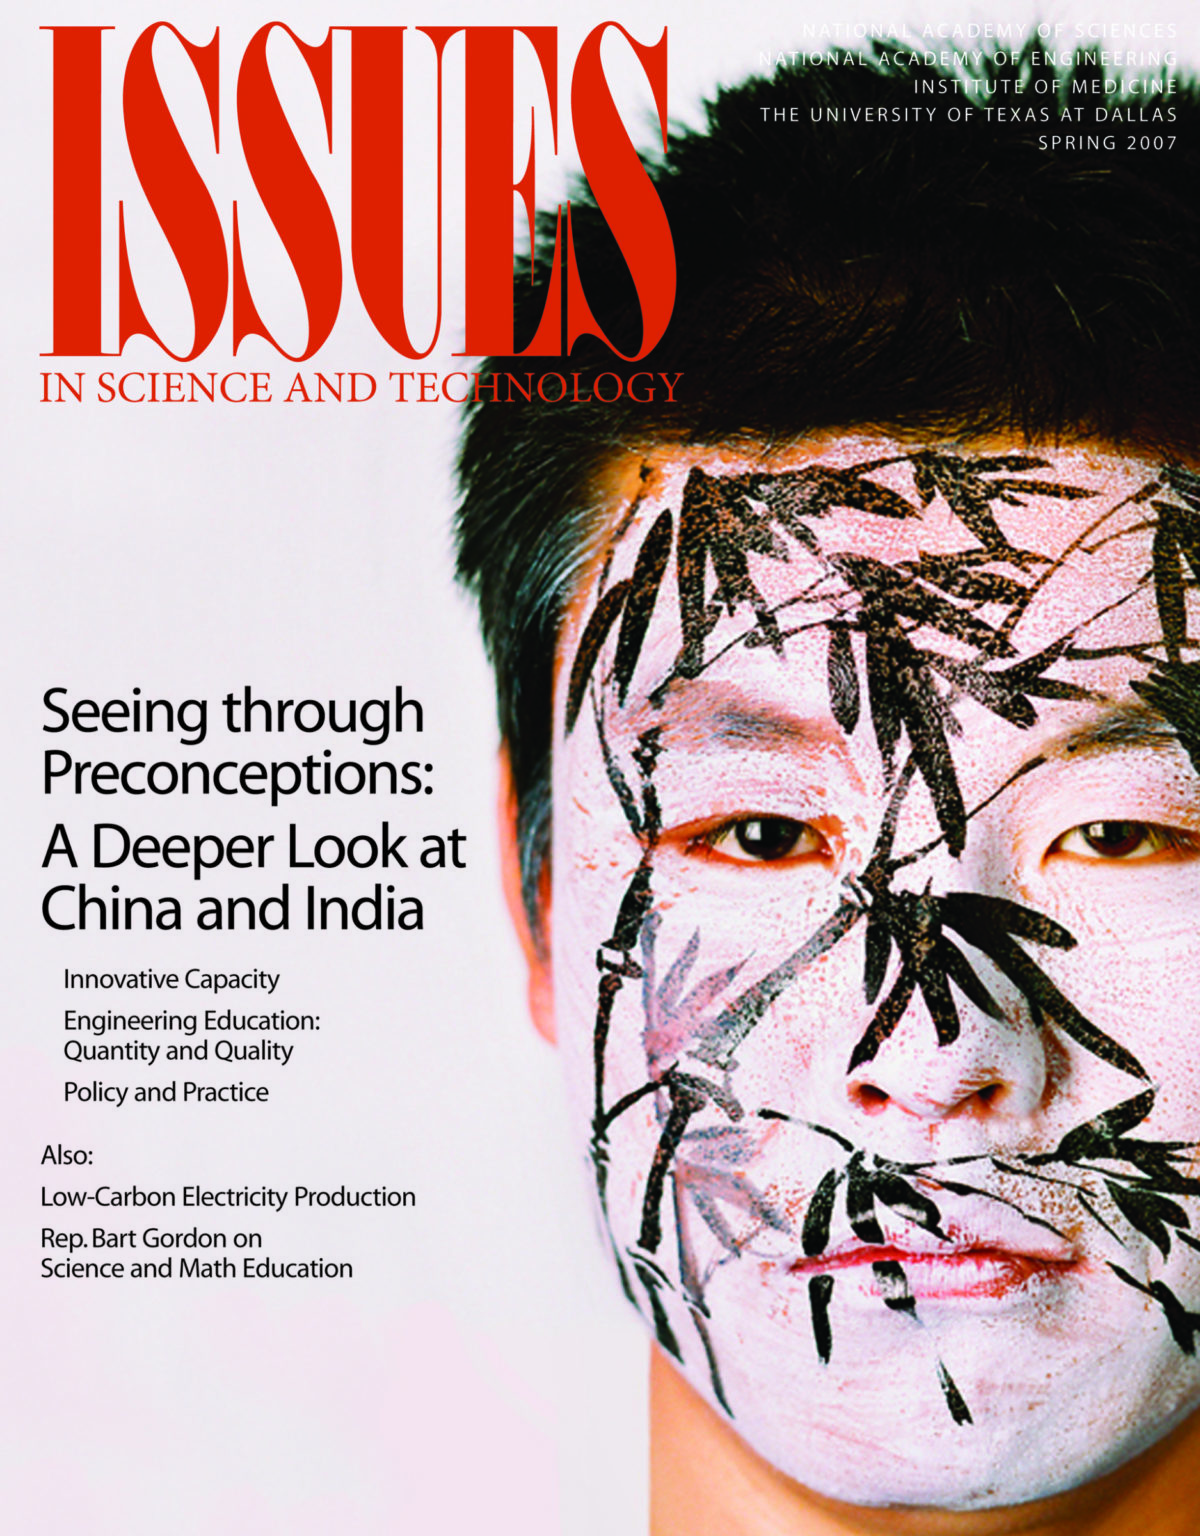 Issues Spring 2007 Seeing through Preconceptions front cover with man's face painted with bamboo on it